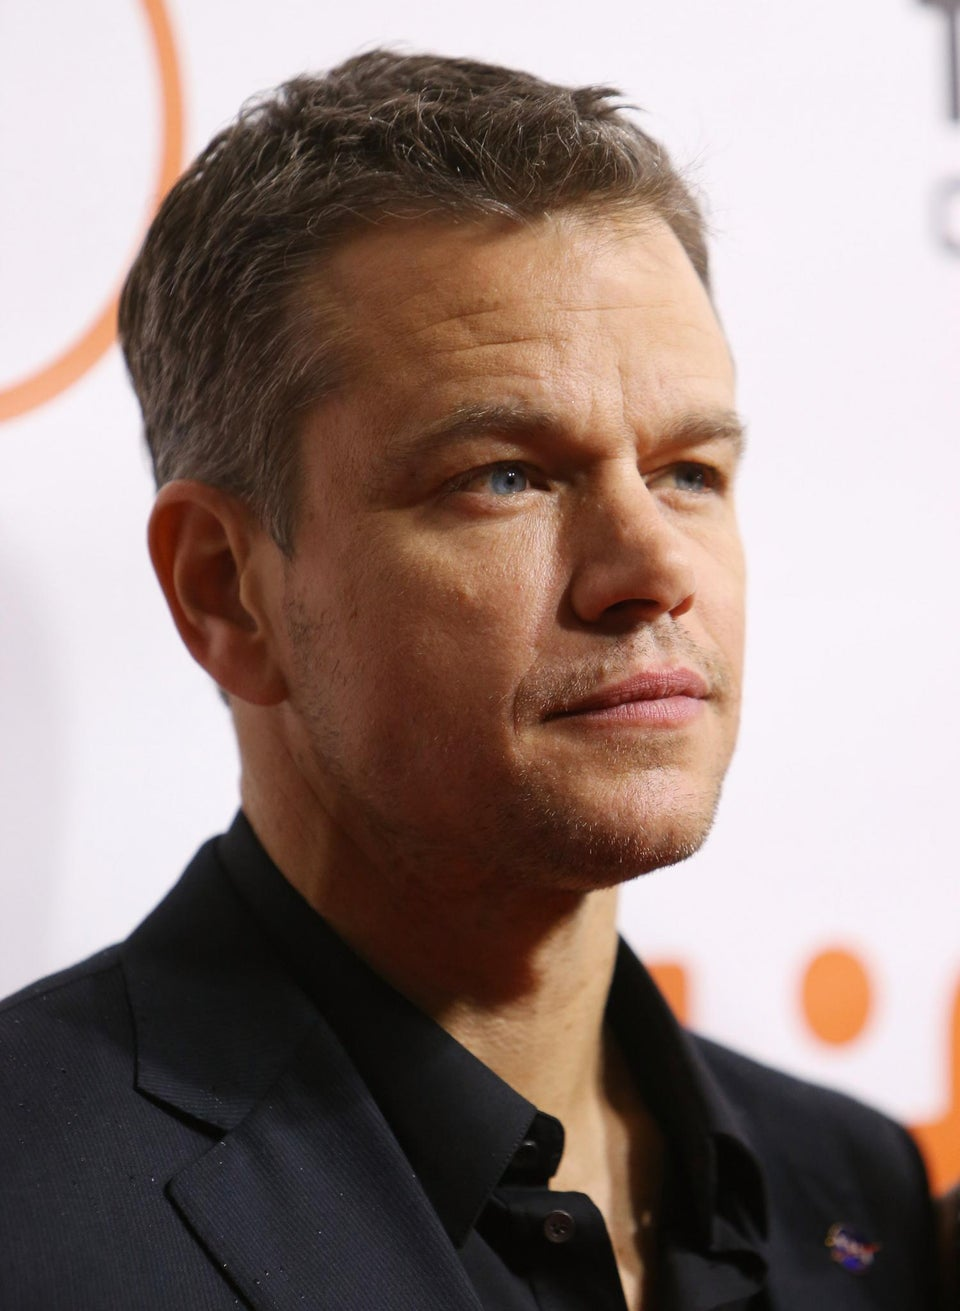 Matt Damon Apologizes for Diversity Remarks: 'I Believe There Needs to be More Diverse Filmmakers'